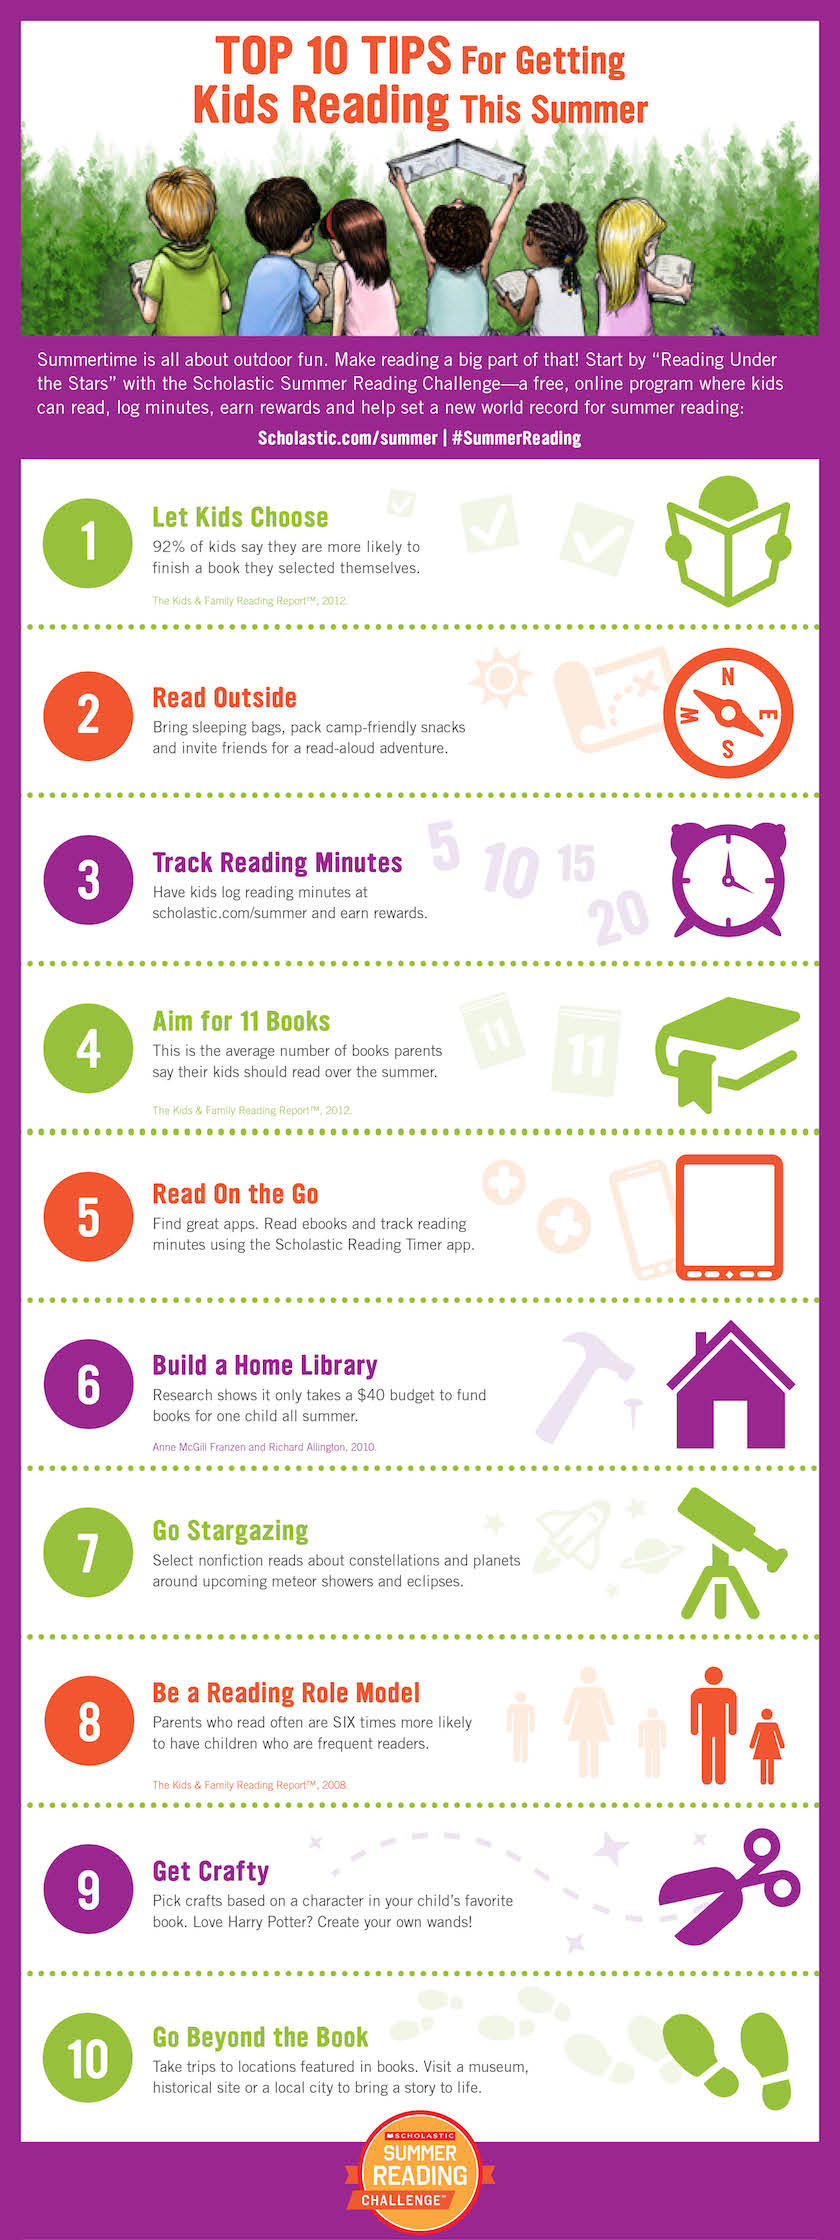 Top 10 Tips for Getting Kids Reading this Summer